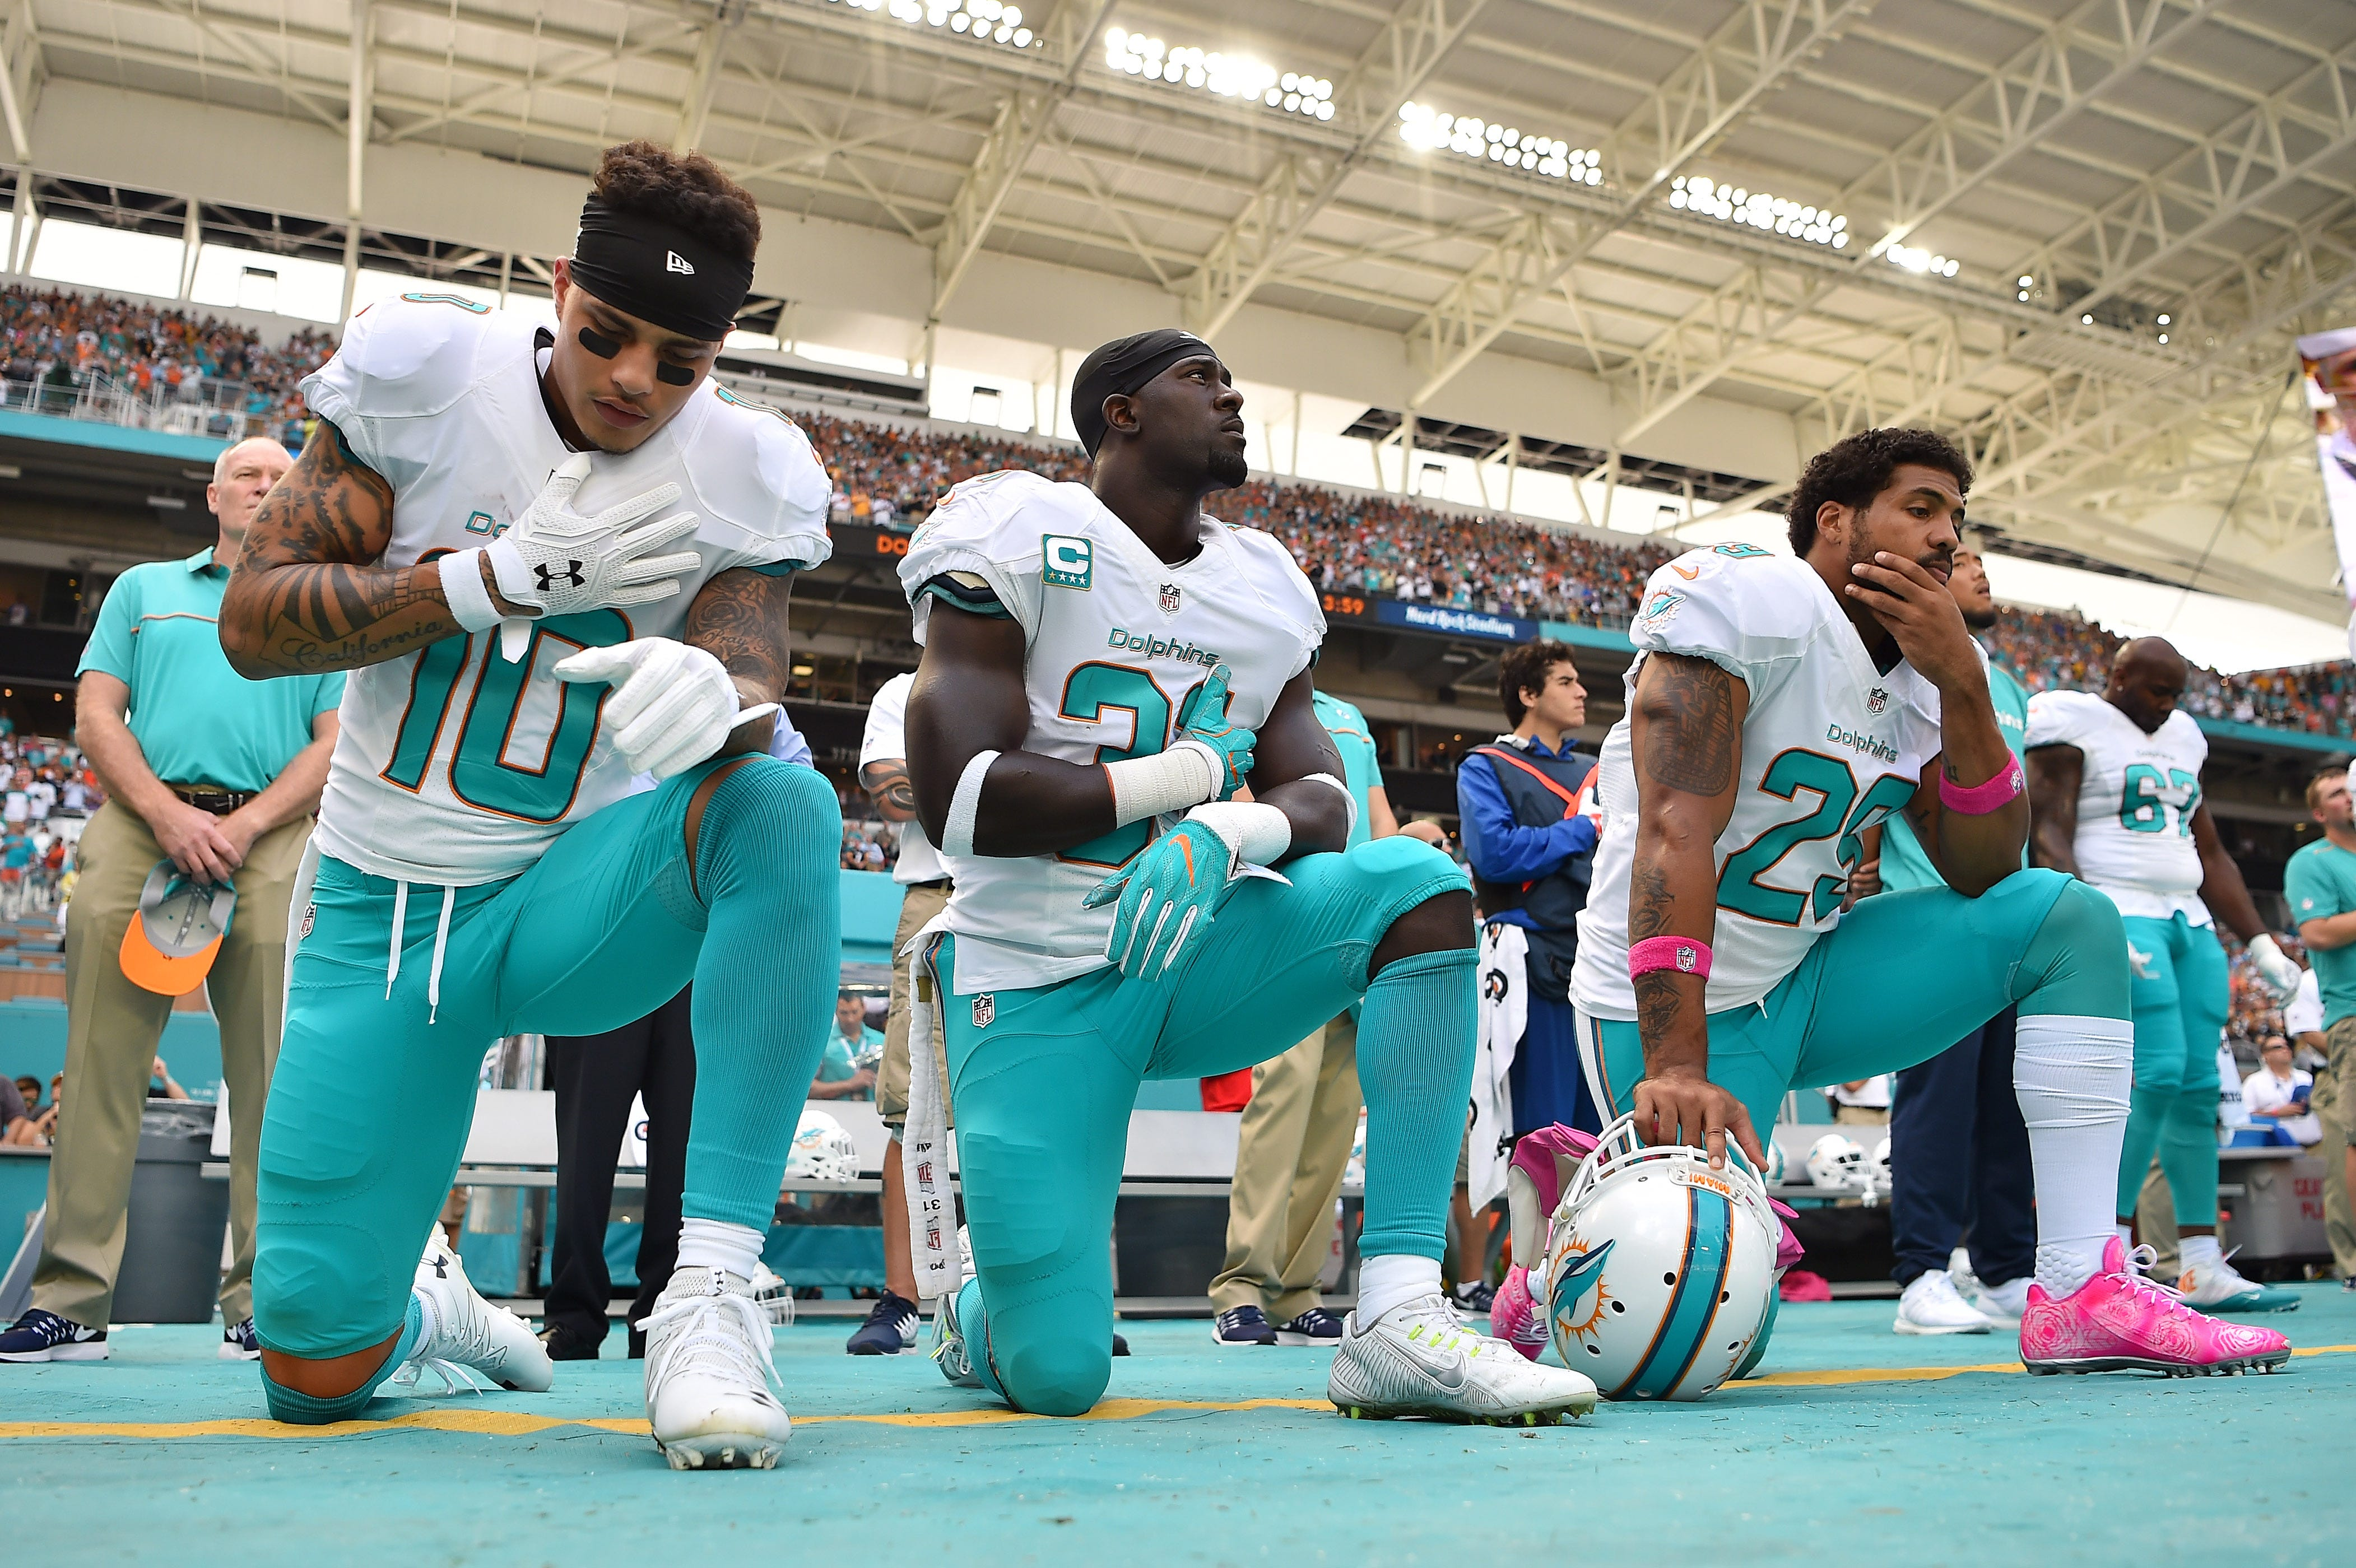 Dolphins' Adam Gase: 'Good luck' trying to suspend players for protests during anthem